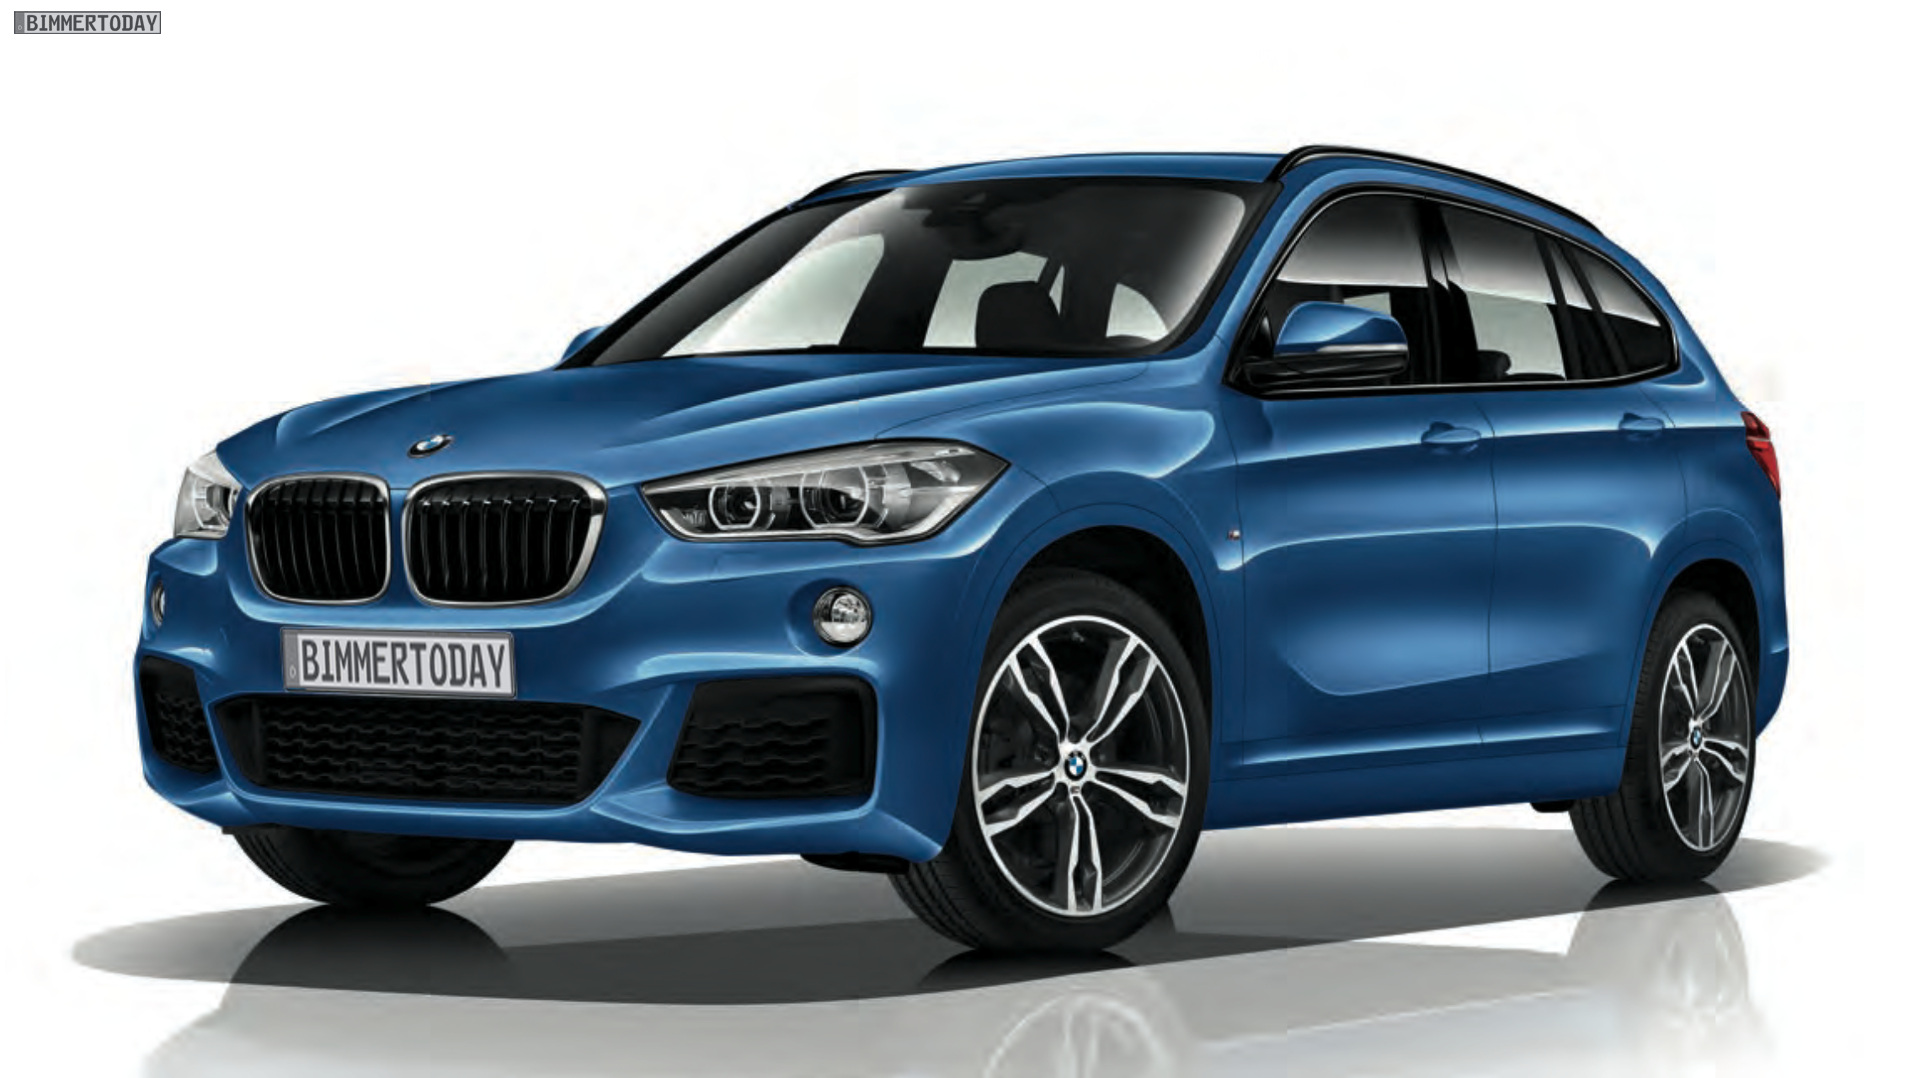 bmw x1 2015 mit m sport paket f48 im m look in estorilblau. Black Bedroom Furniture Sets. Home Design Ideas